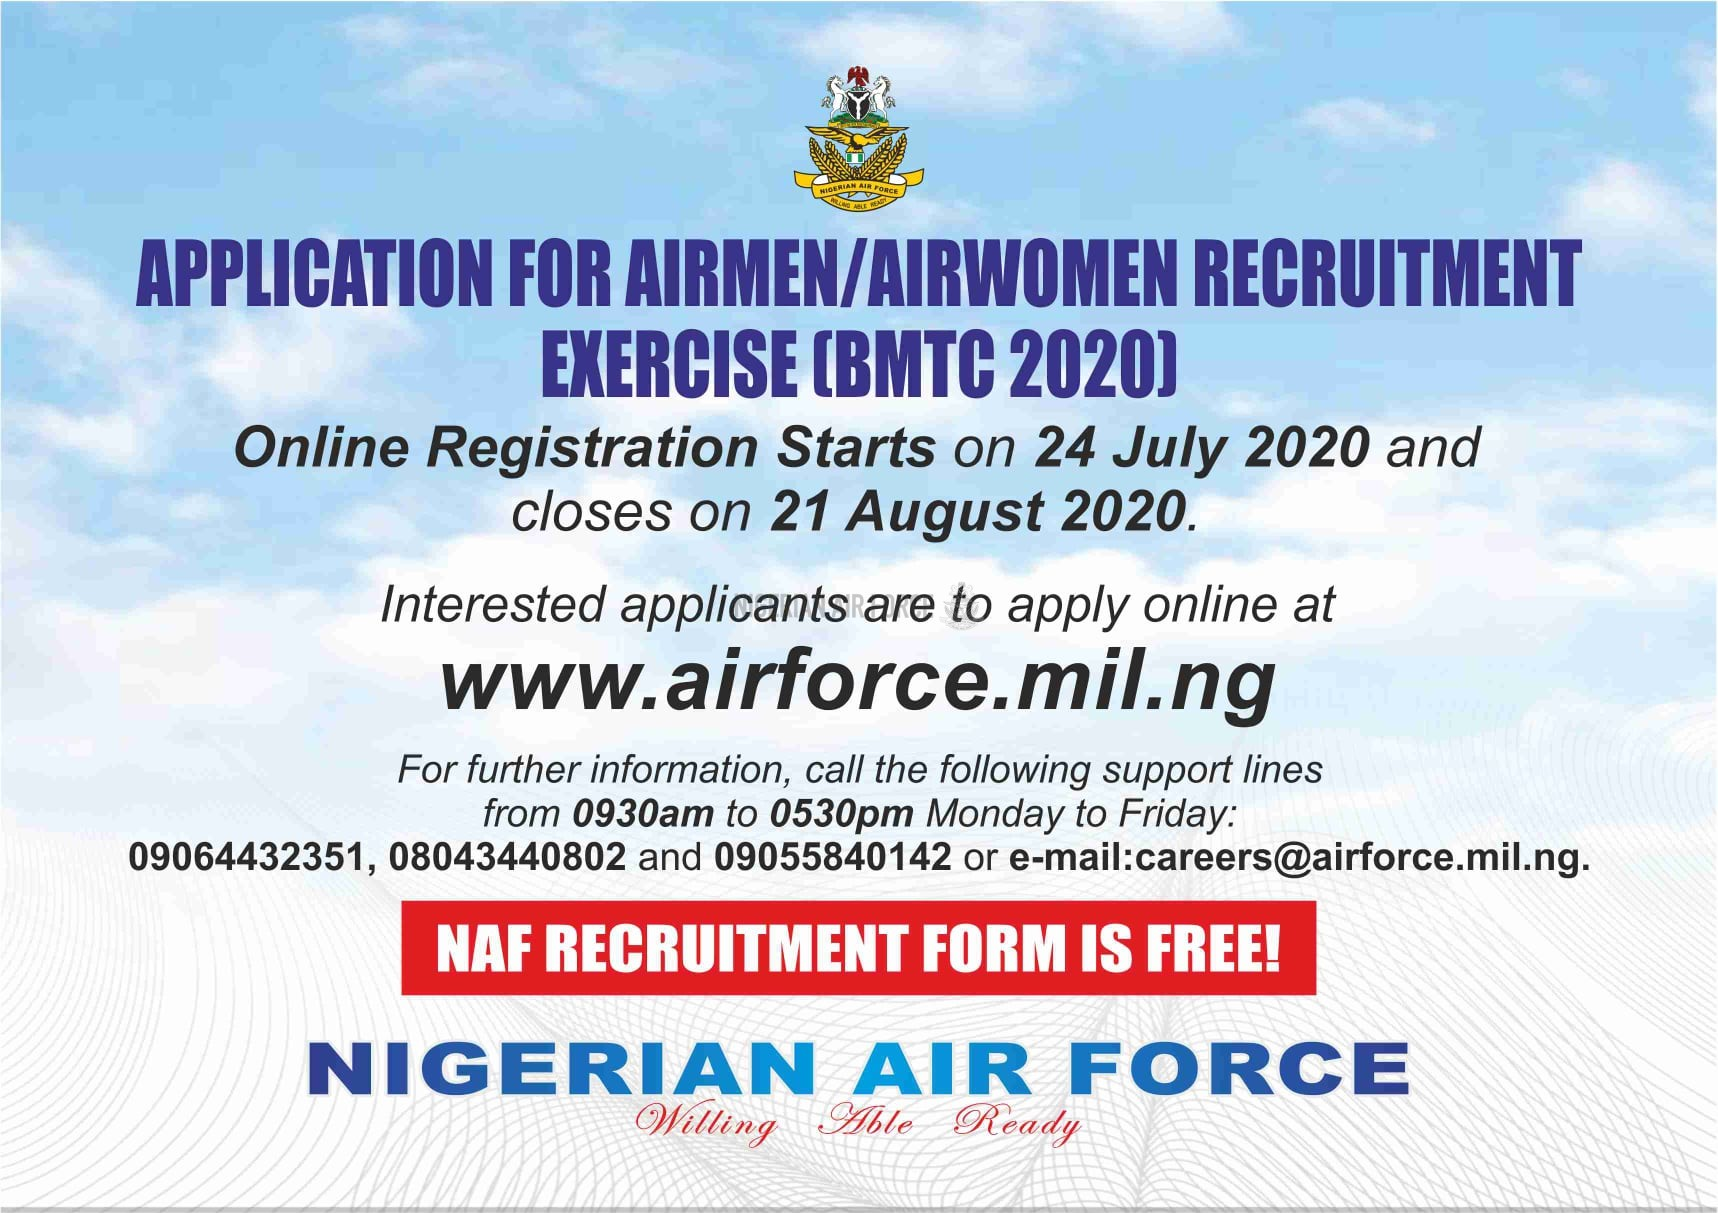 APPLICATION FOR AIRMEN, AIRWOMEN RECRUITMENT TO COMMENCE ONLINE ON  24 JULY 2020